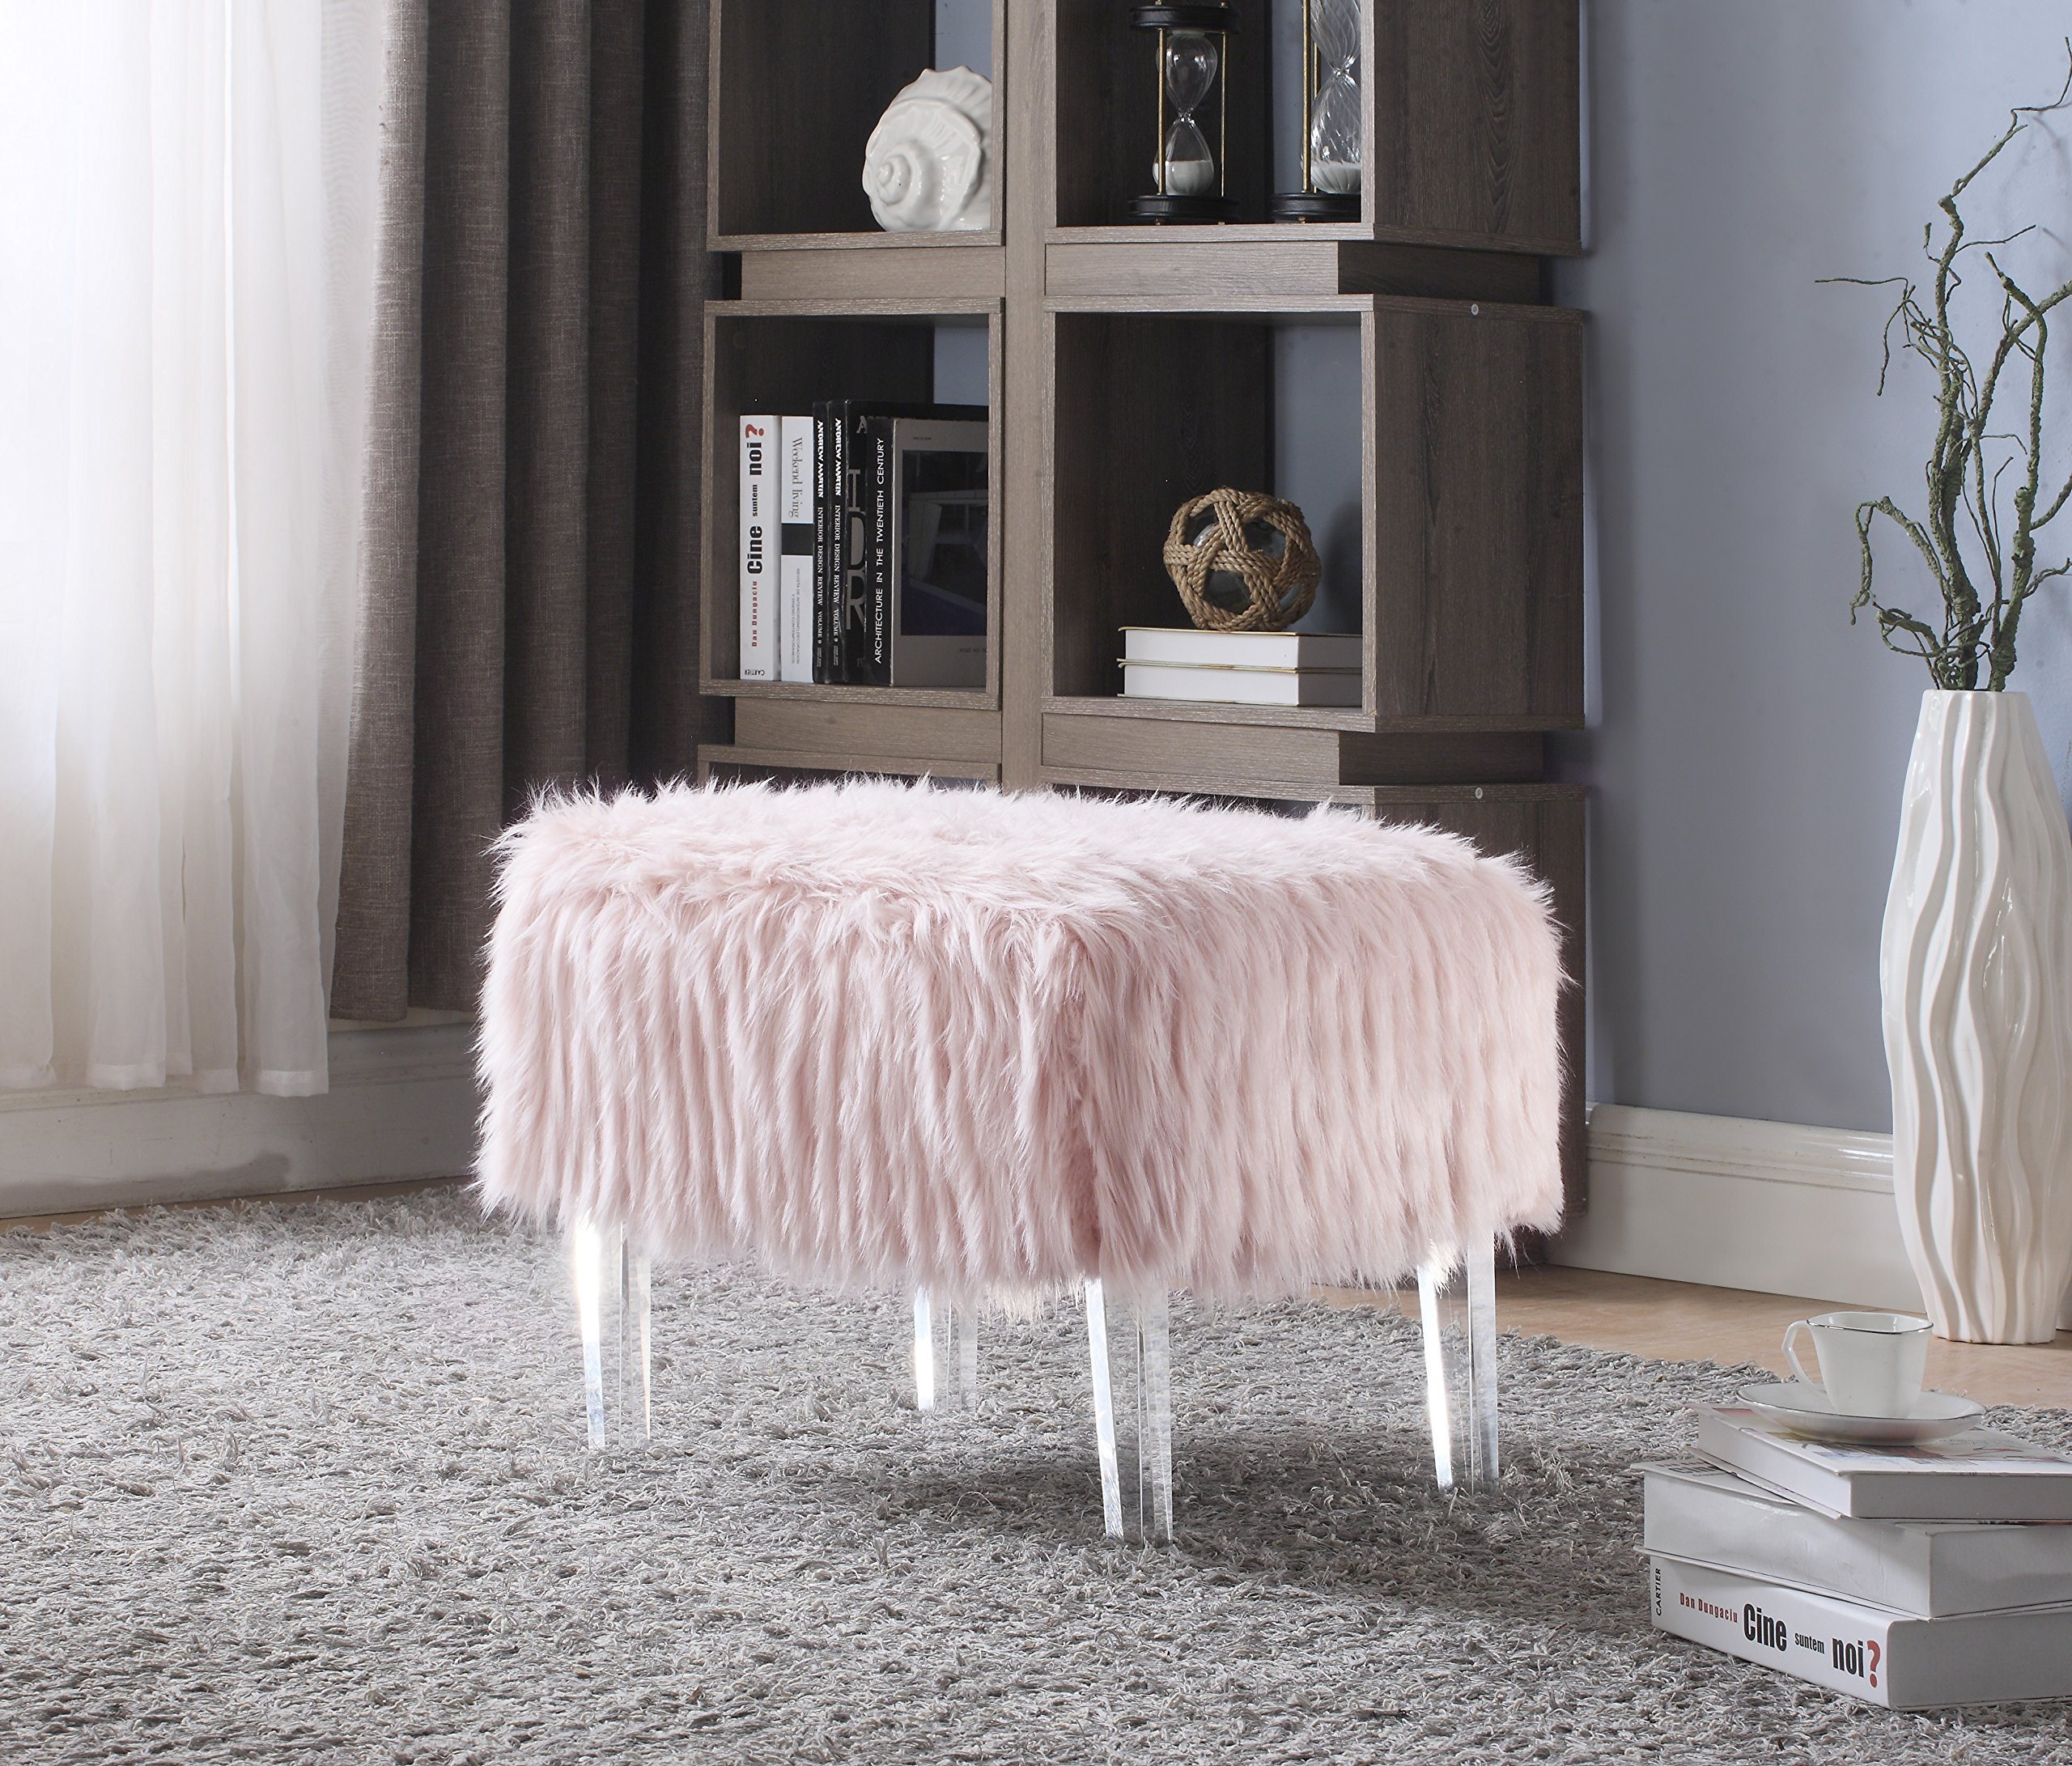 Iconic Home FiorinoModern Contemporary Faux Fur Acrylic Leg Ottoman, Pink by Iconic Home